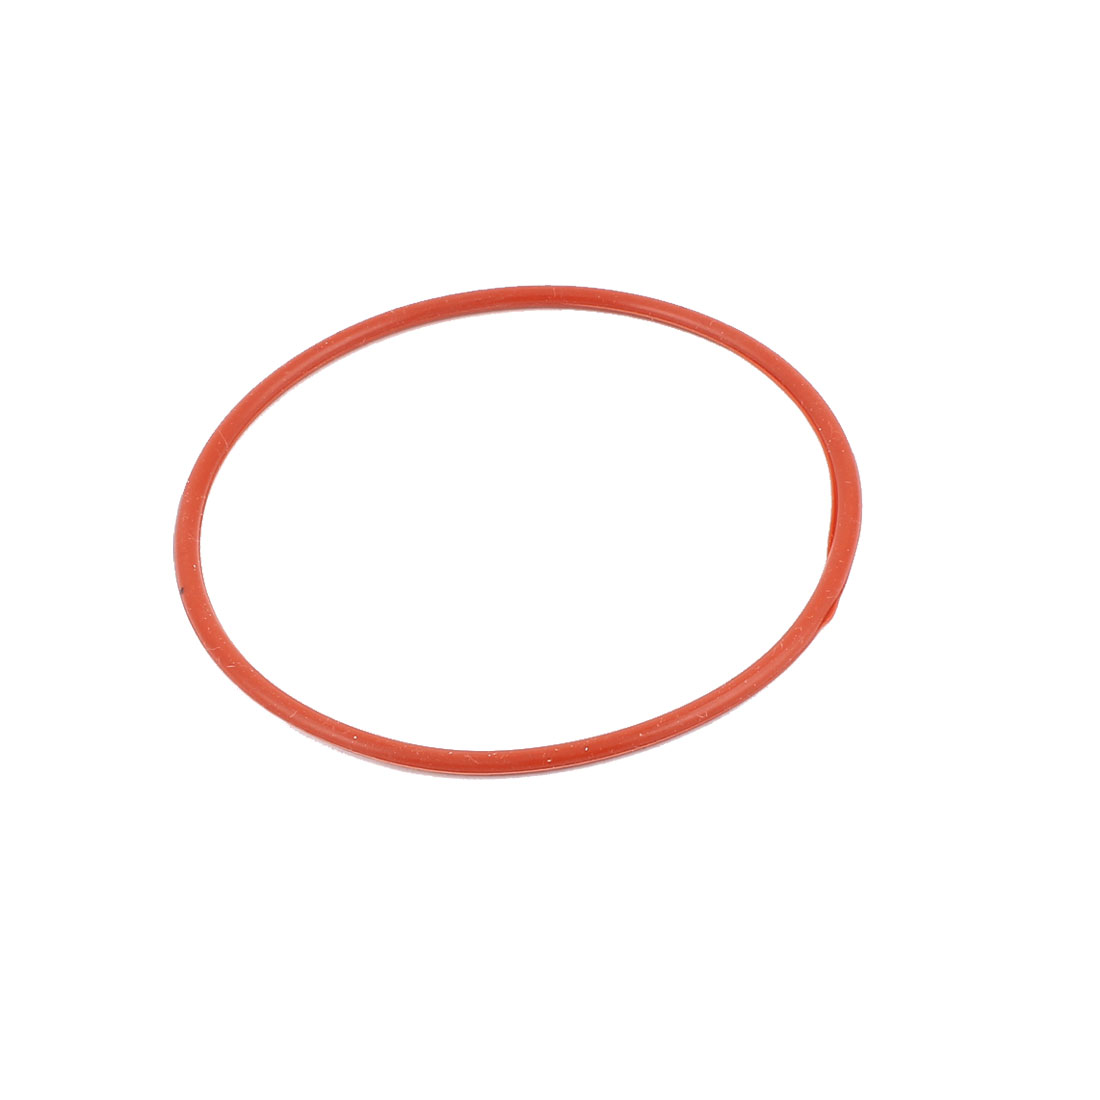 Rubber 90mm x 84mm x 3mm Oil Seal O Rings Gaskets Washers Brick Red